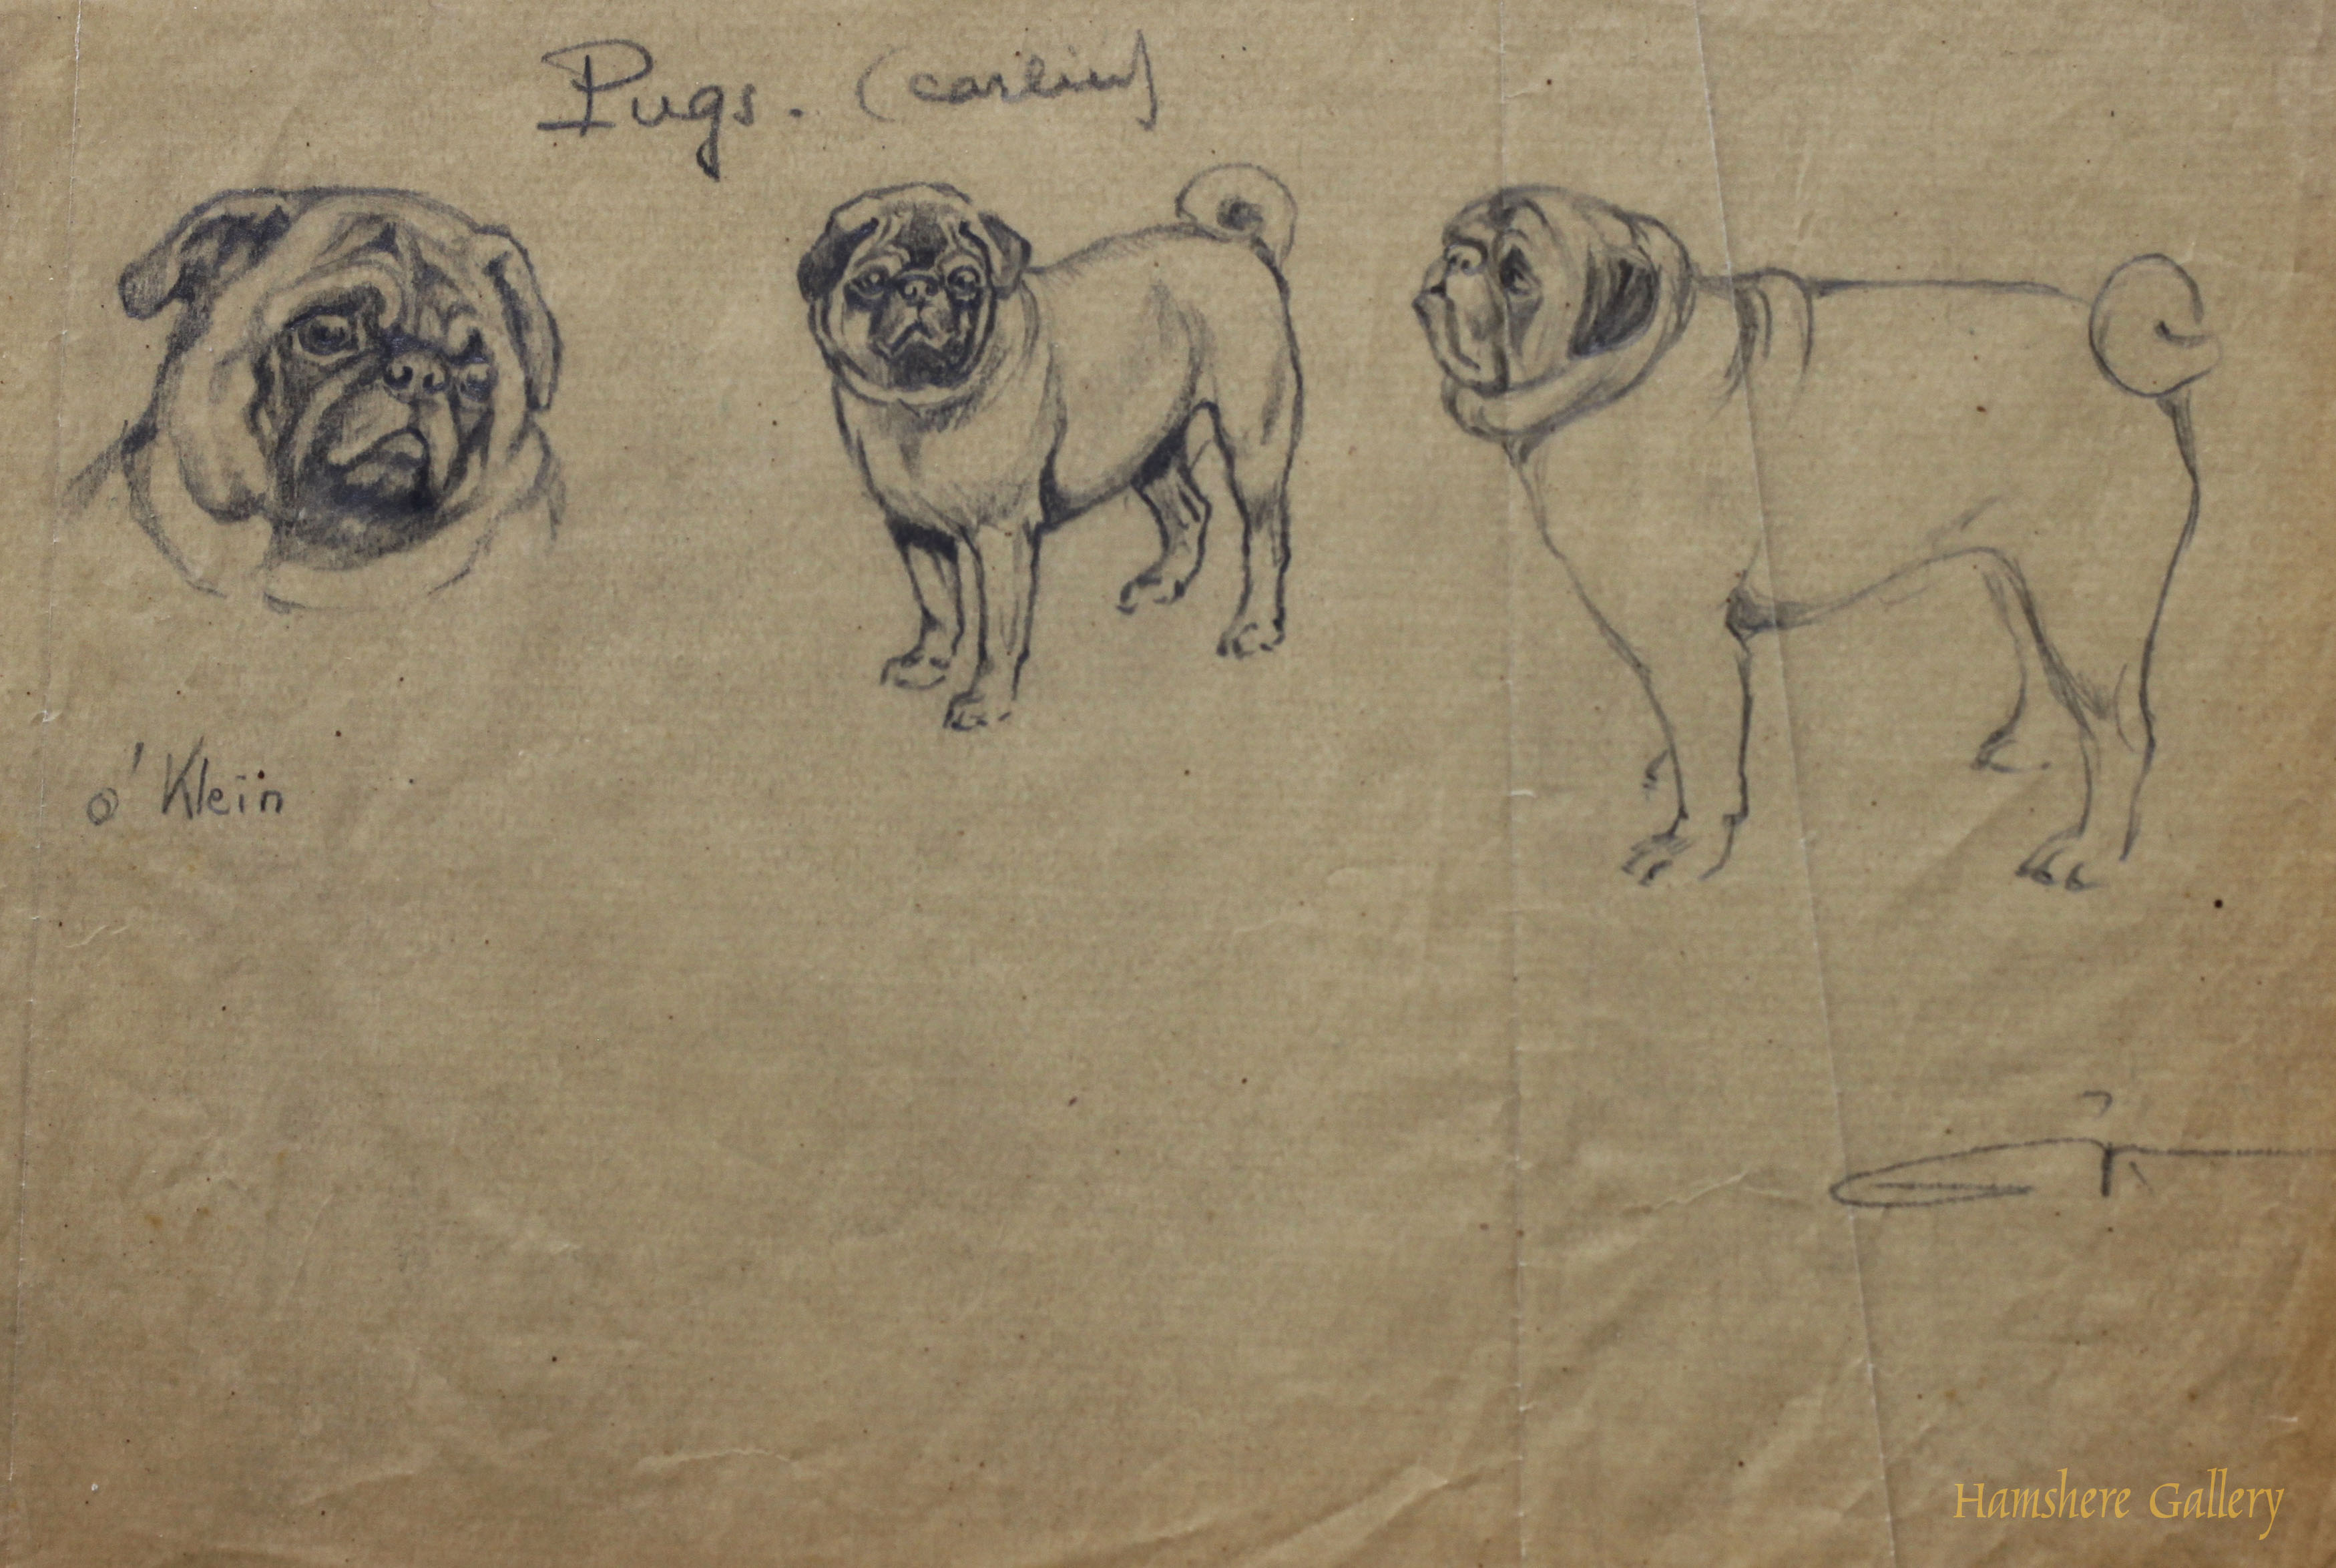 Click to see full size: Pug / Carlin / Mops pencil studies by Borris O�Klein / Jean Herblet